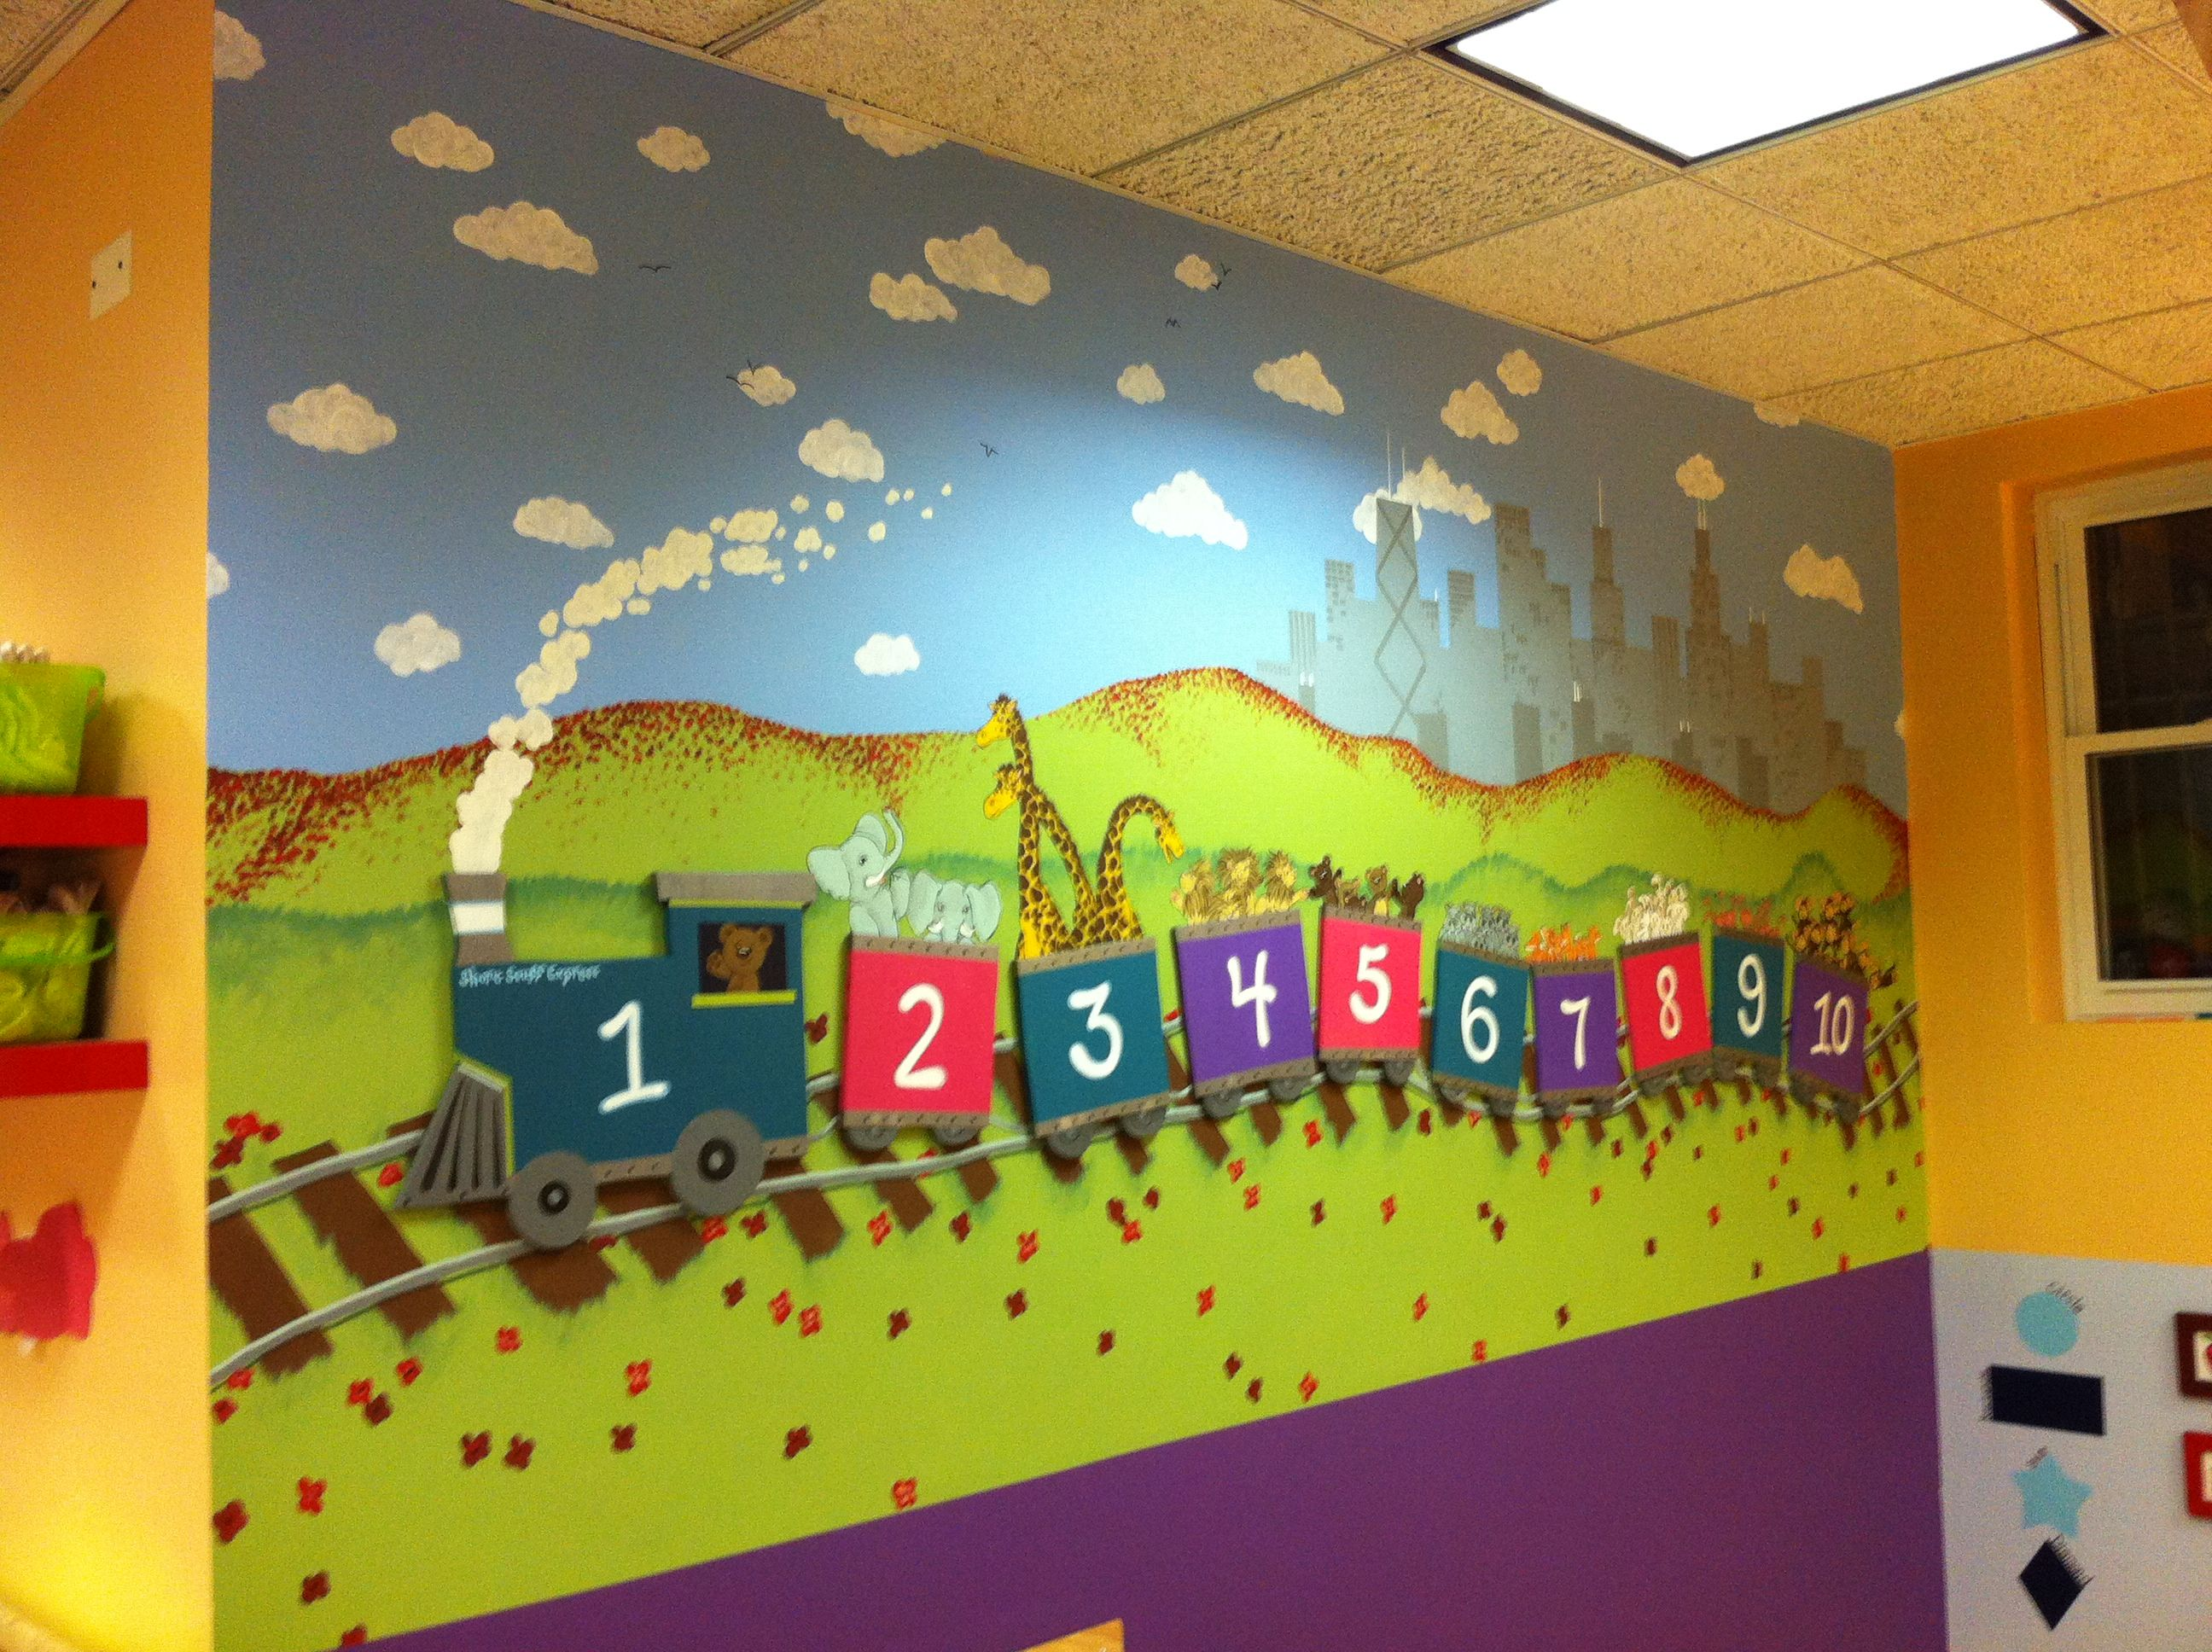 This is the numbers mural at an early education for Art room decoration school